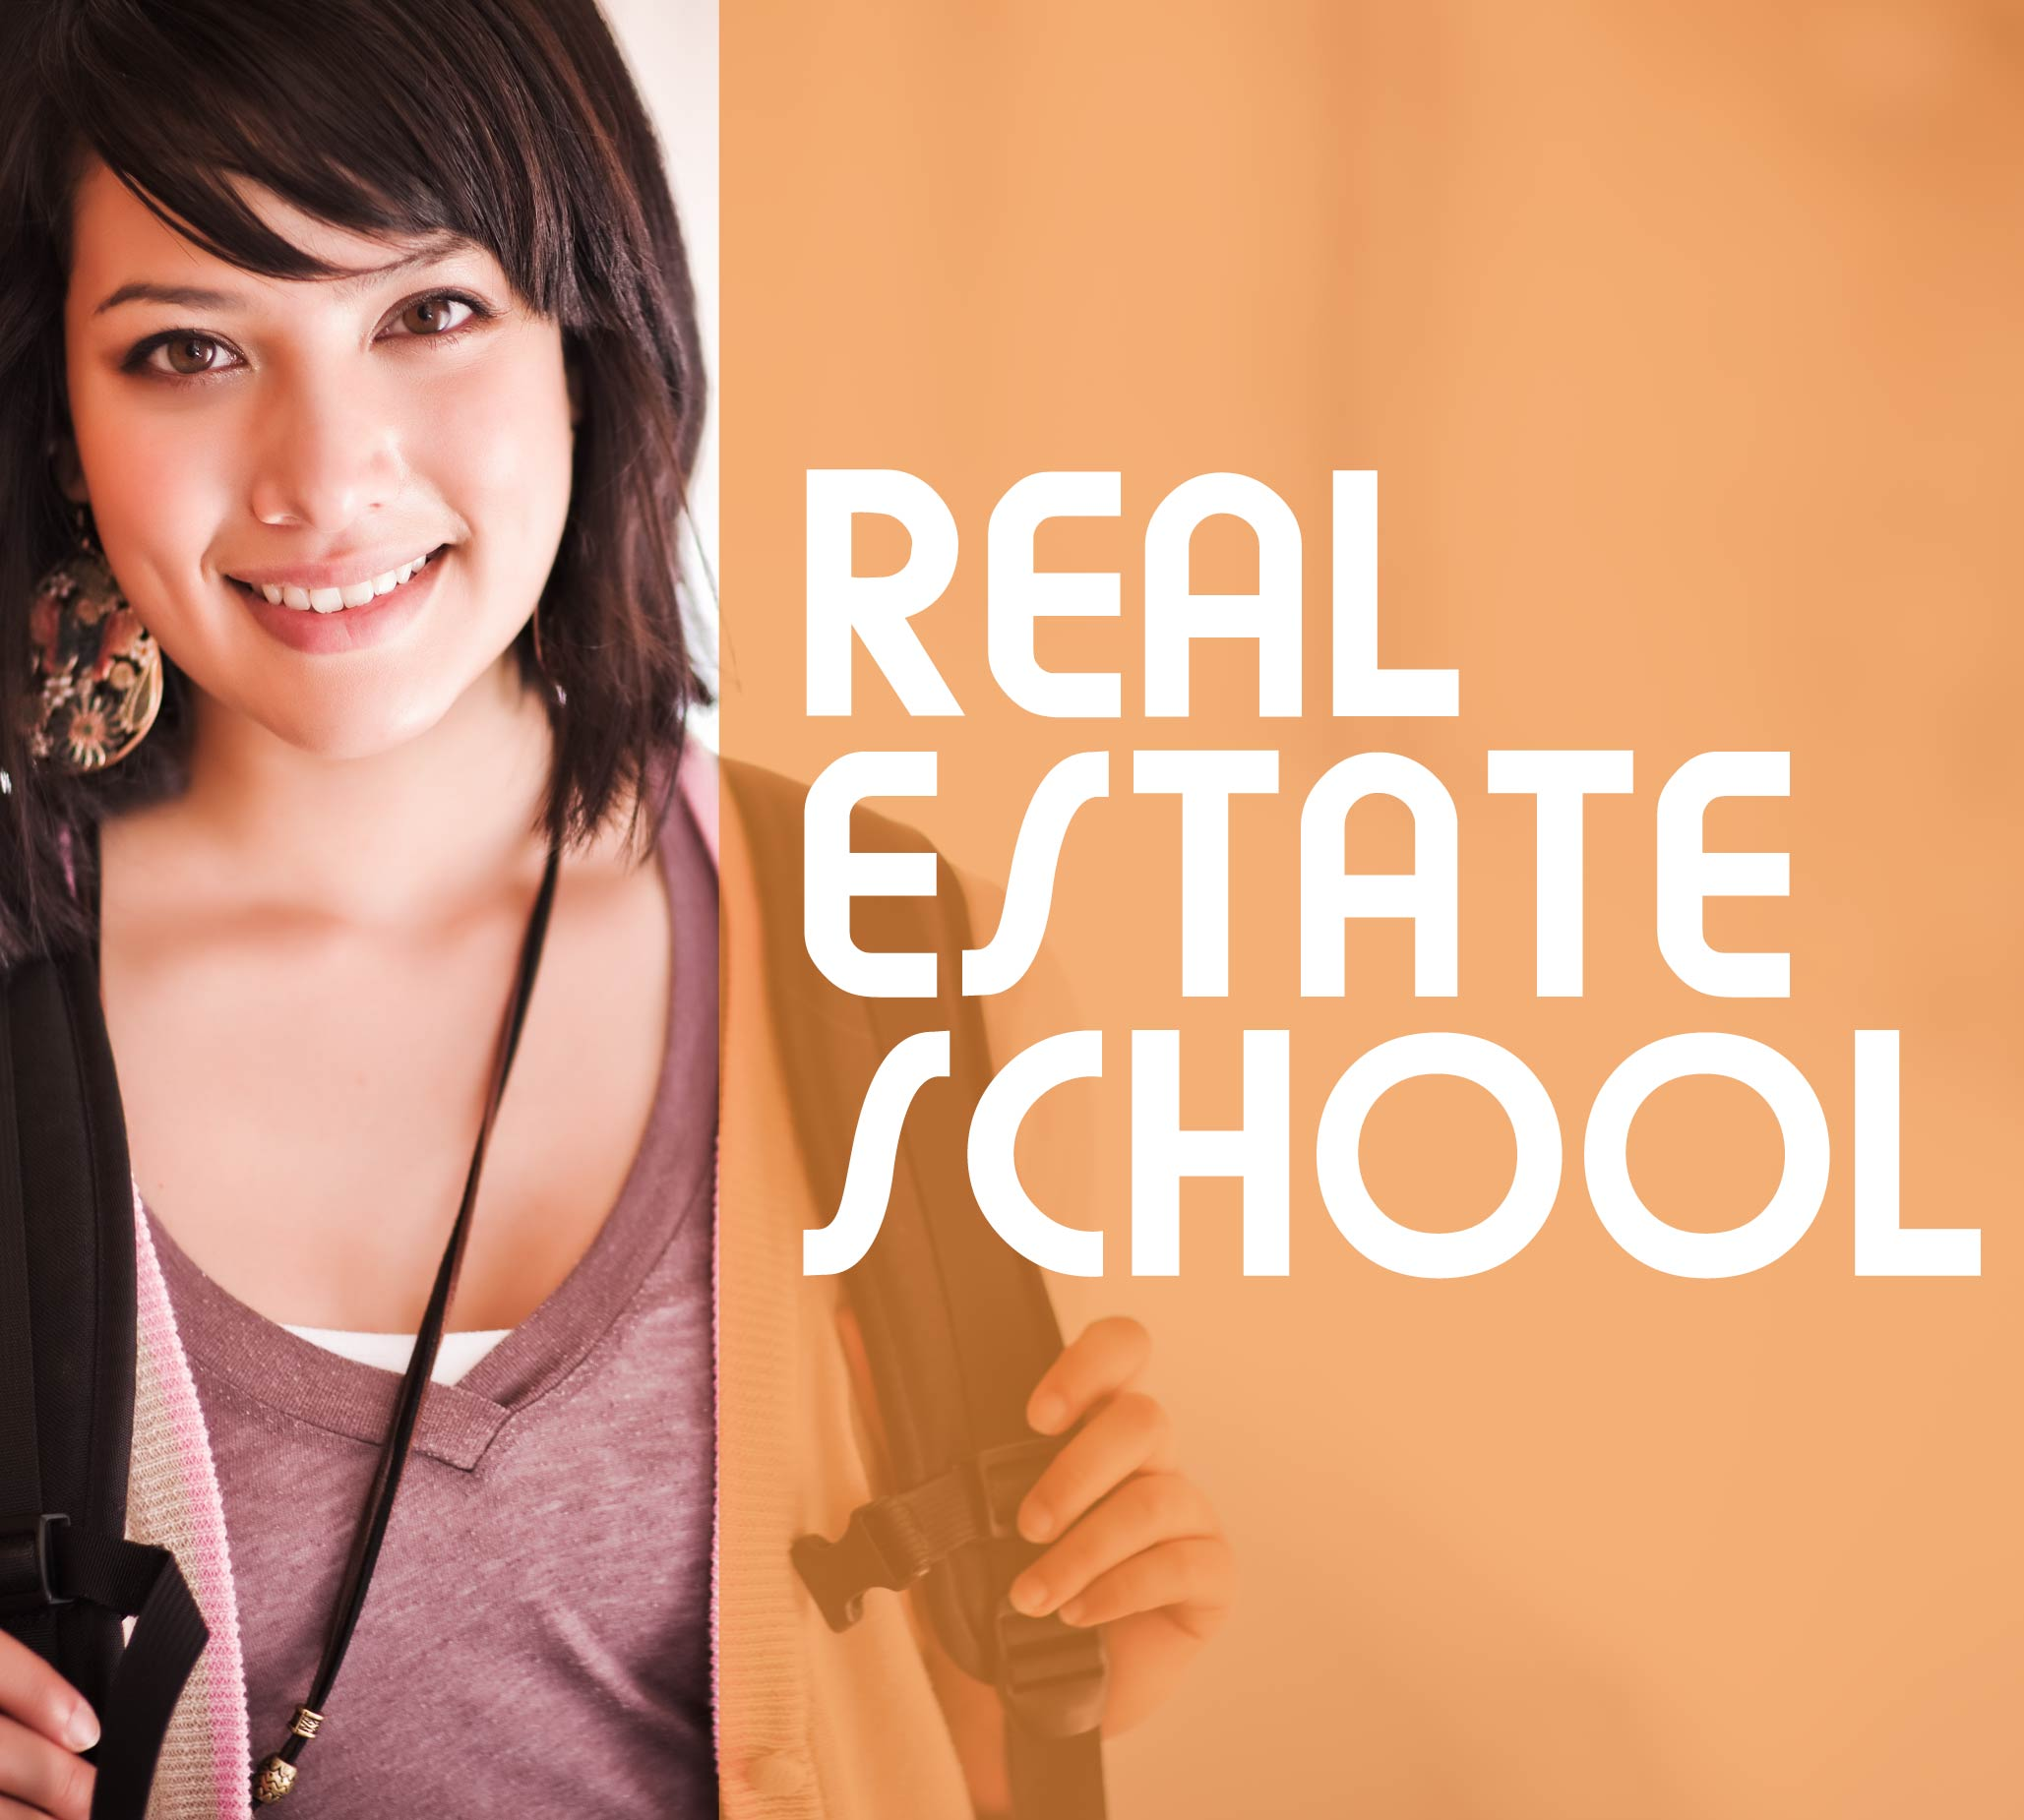 Get-Your-Real-Estate-License-Real-Estate-School-Real-Estate-Classes-Become-a-Real-Estate-Agent-2